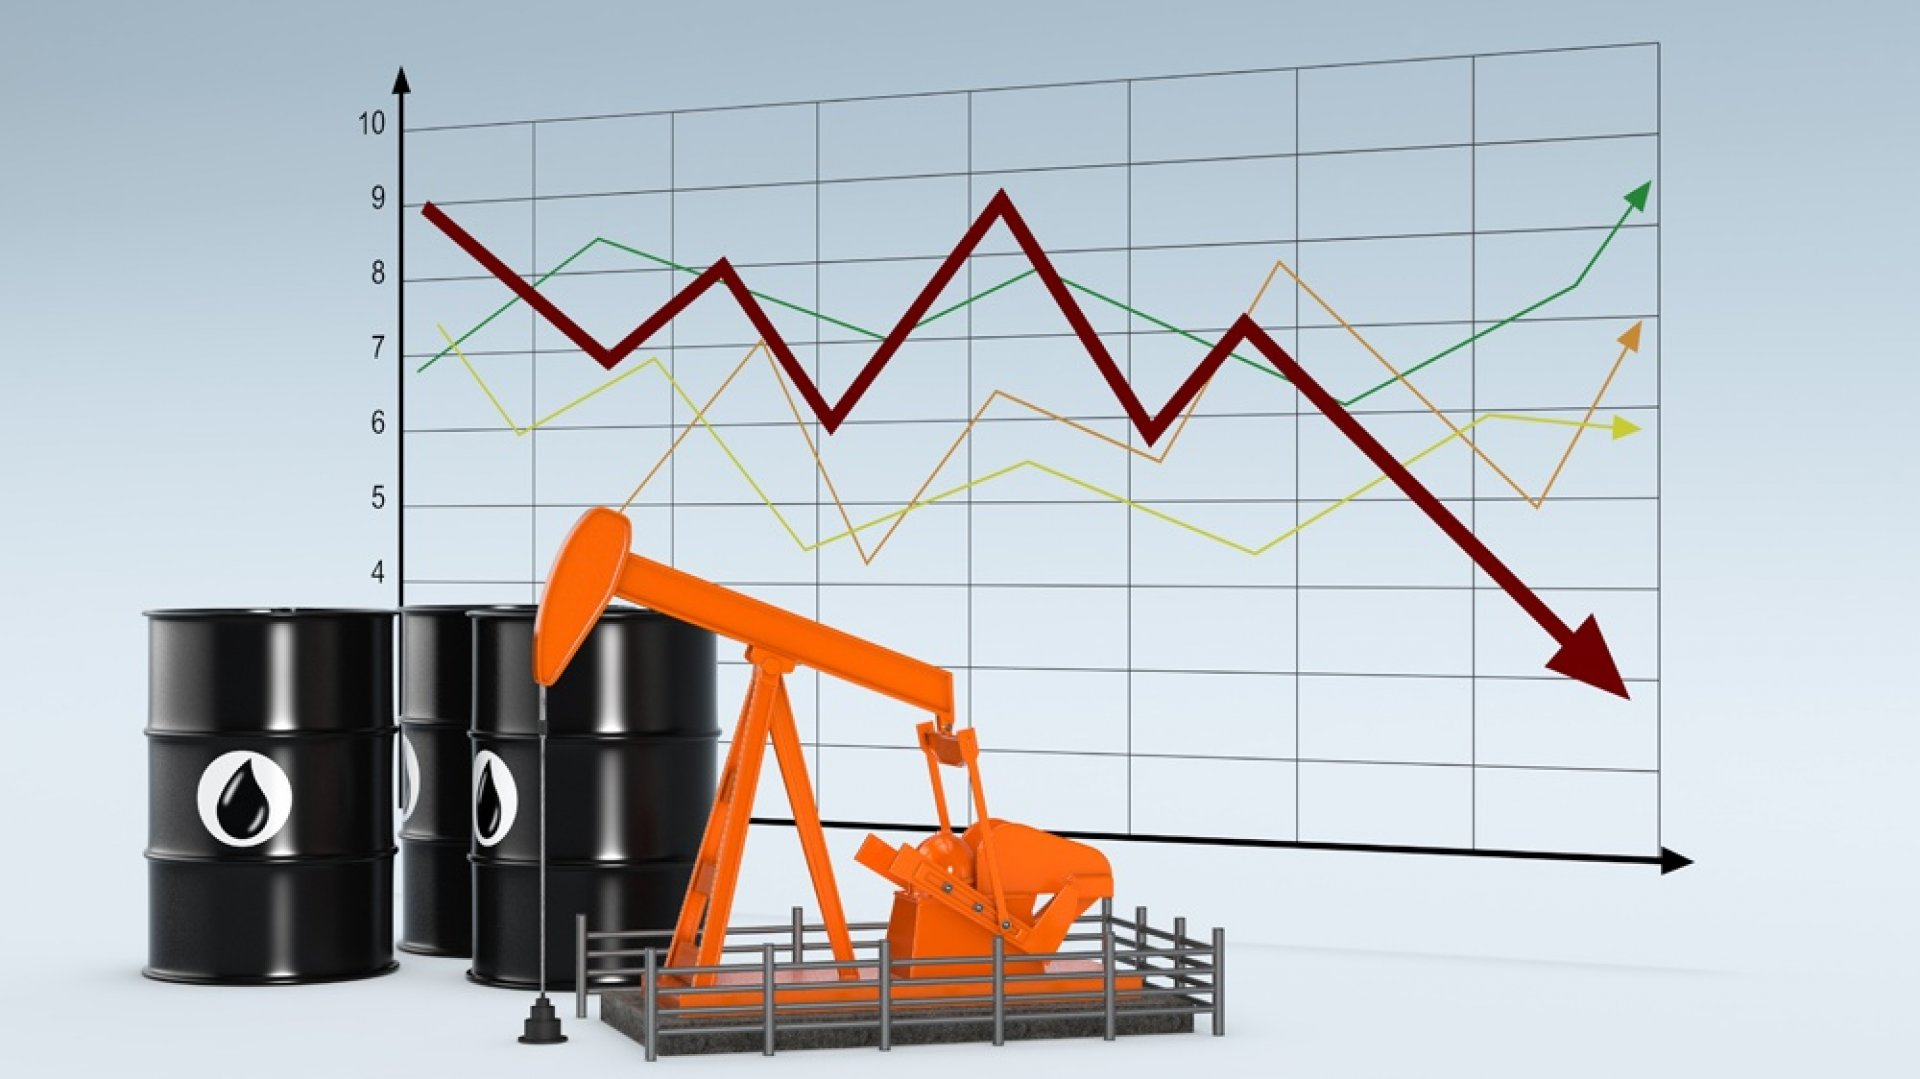 https://media.publika.md/en/image/201704/full/why-oil-production-going-down-prices-cou_18340500.jpg